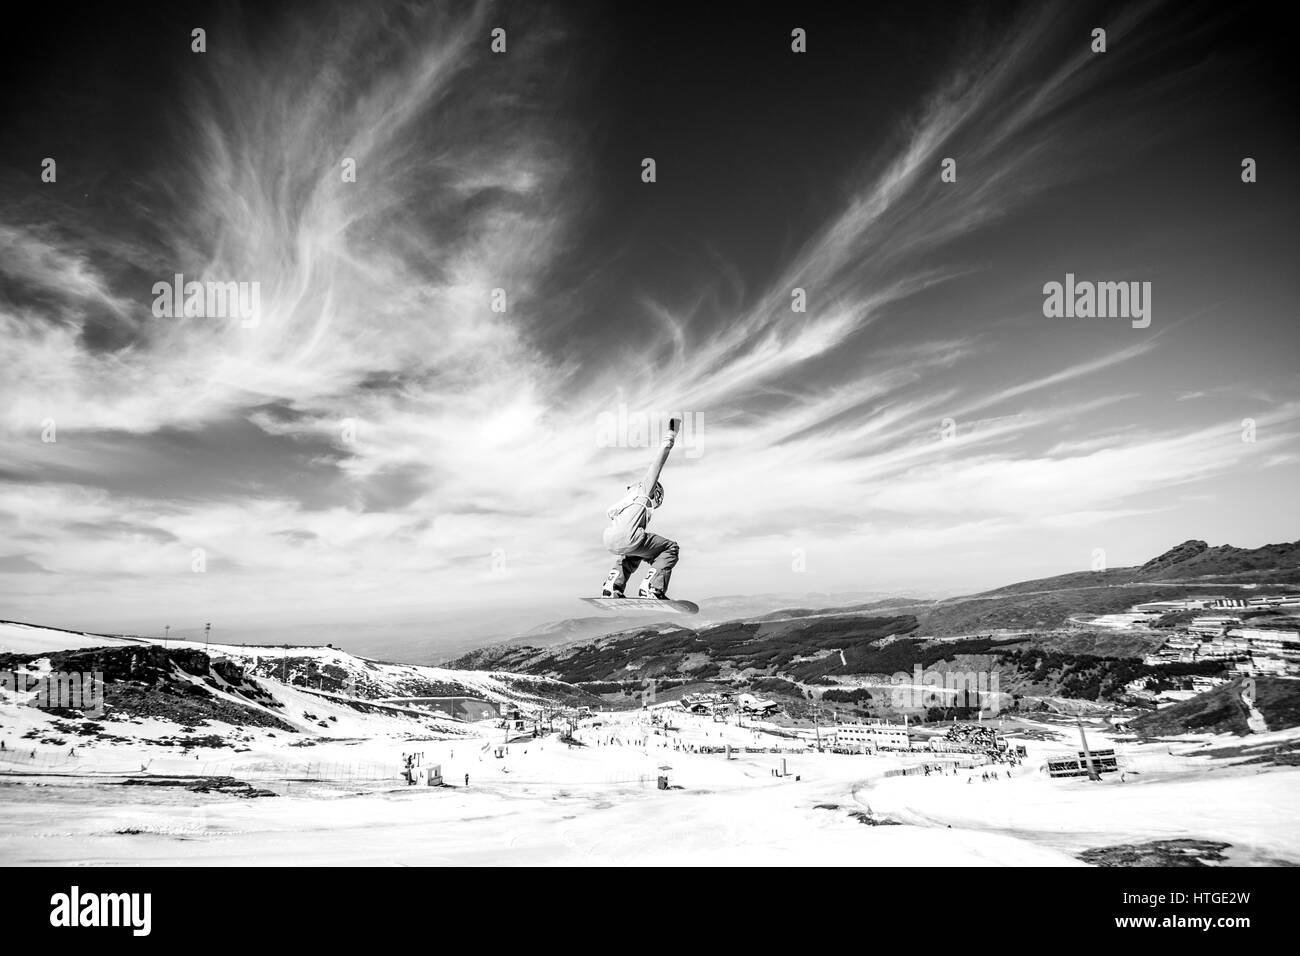 Sierra Nevada, Spain. 11th Mar, 2017. Seppe Smits (Belgium) during the final of Men's Slopestyle of FIS World - Stock Image